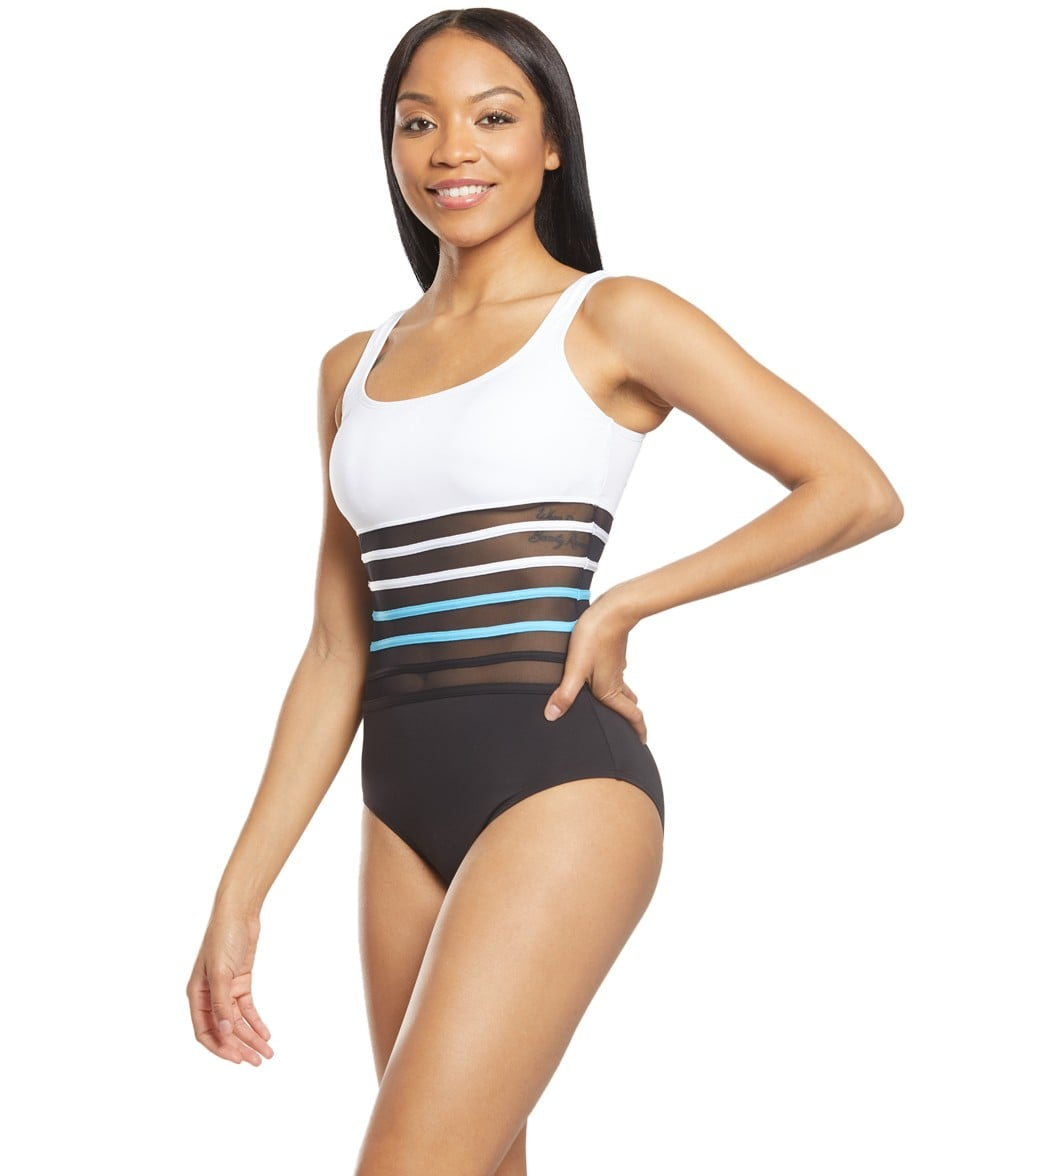 2daba61b17a64 Nautica Meridian Scoop Mesh One Piece Swimsuit at SwimOutlet.com ...